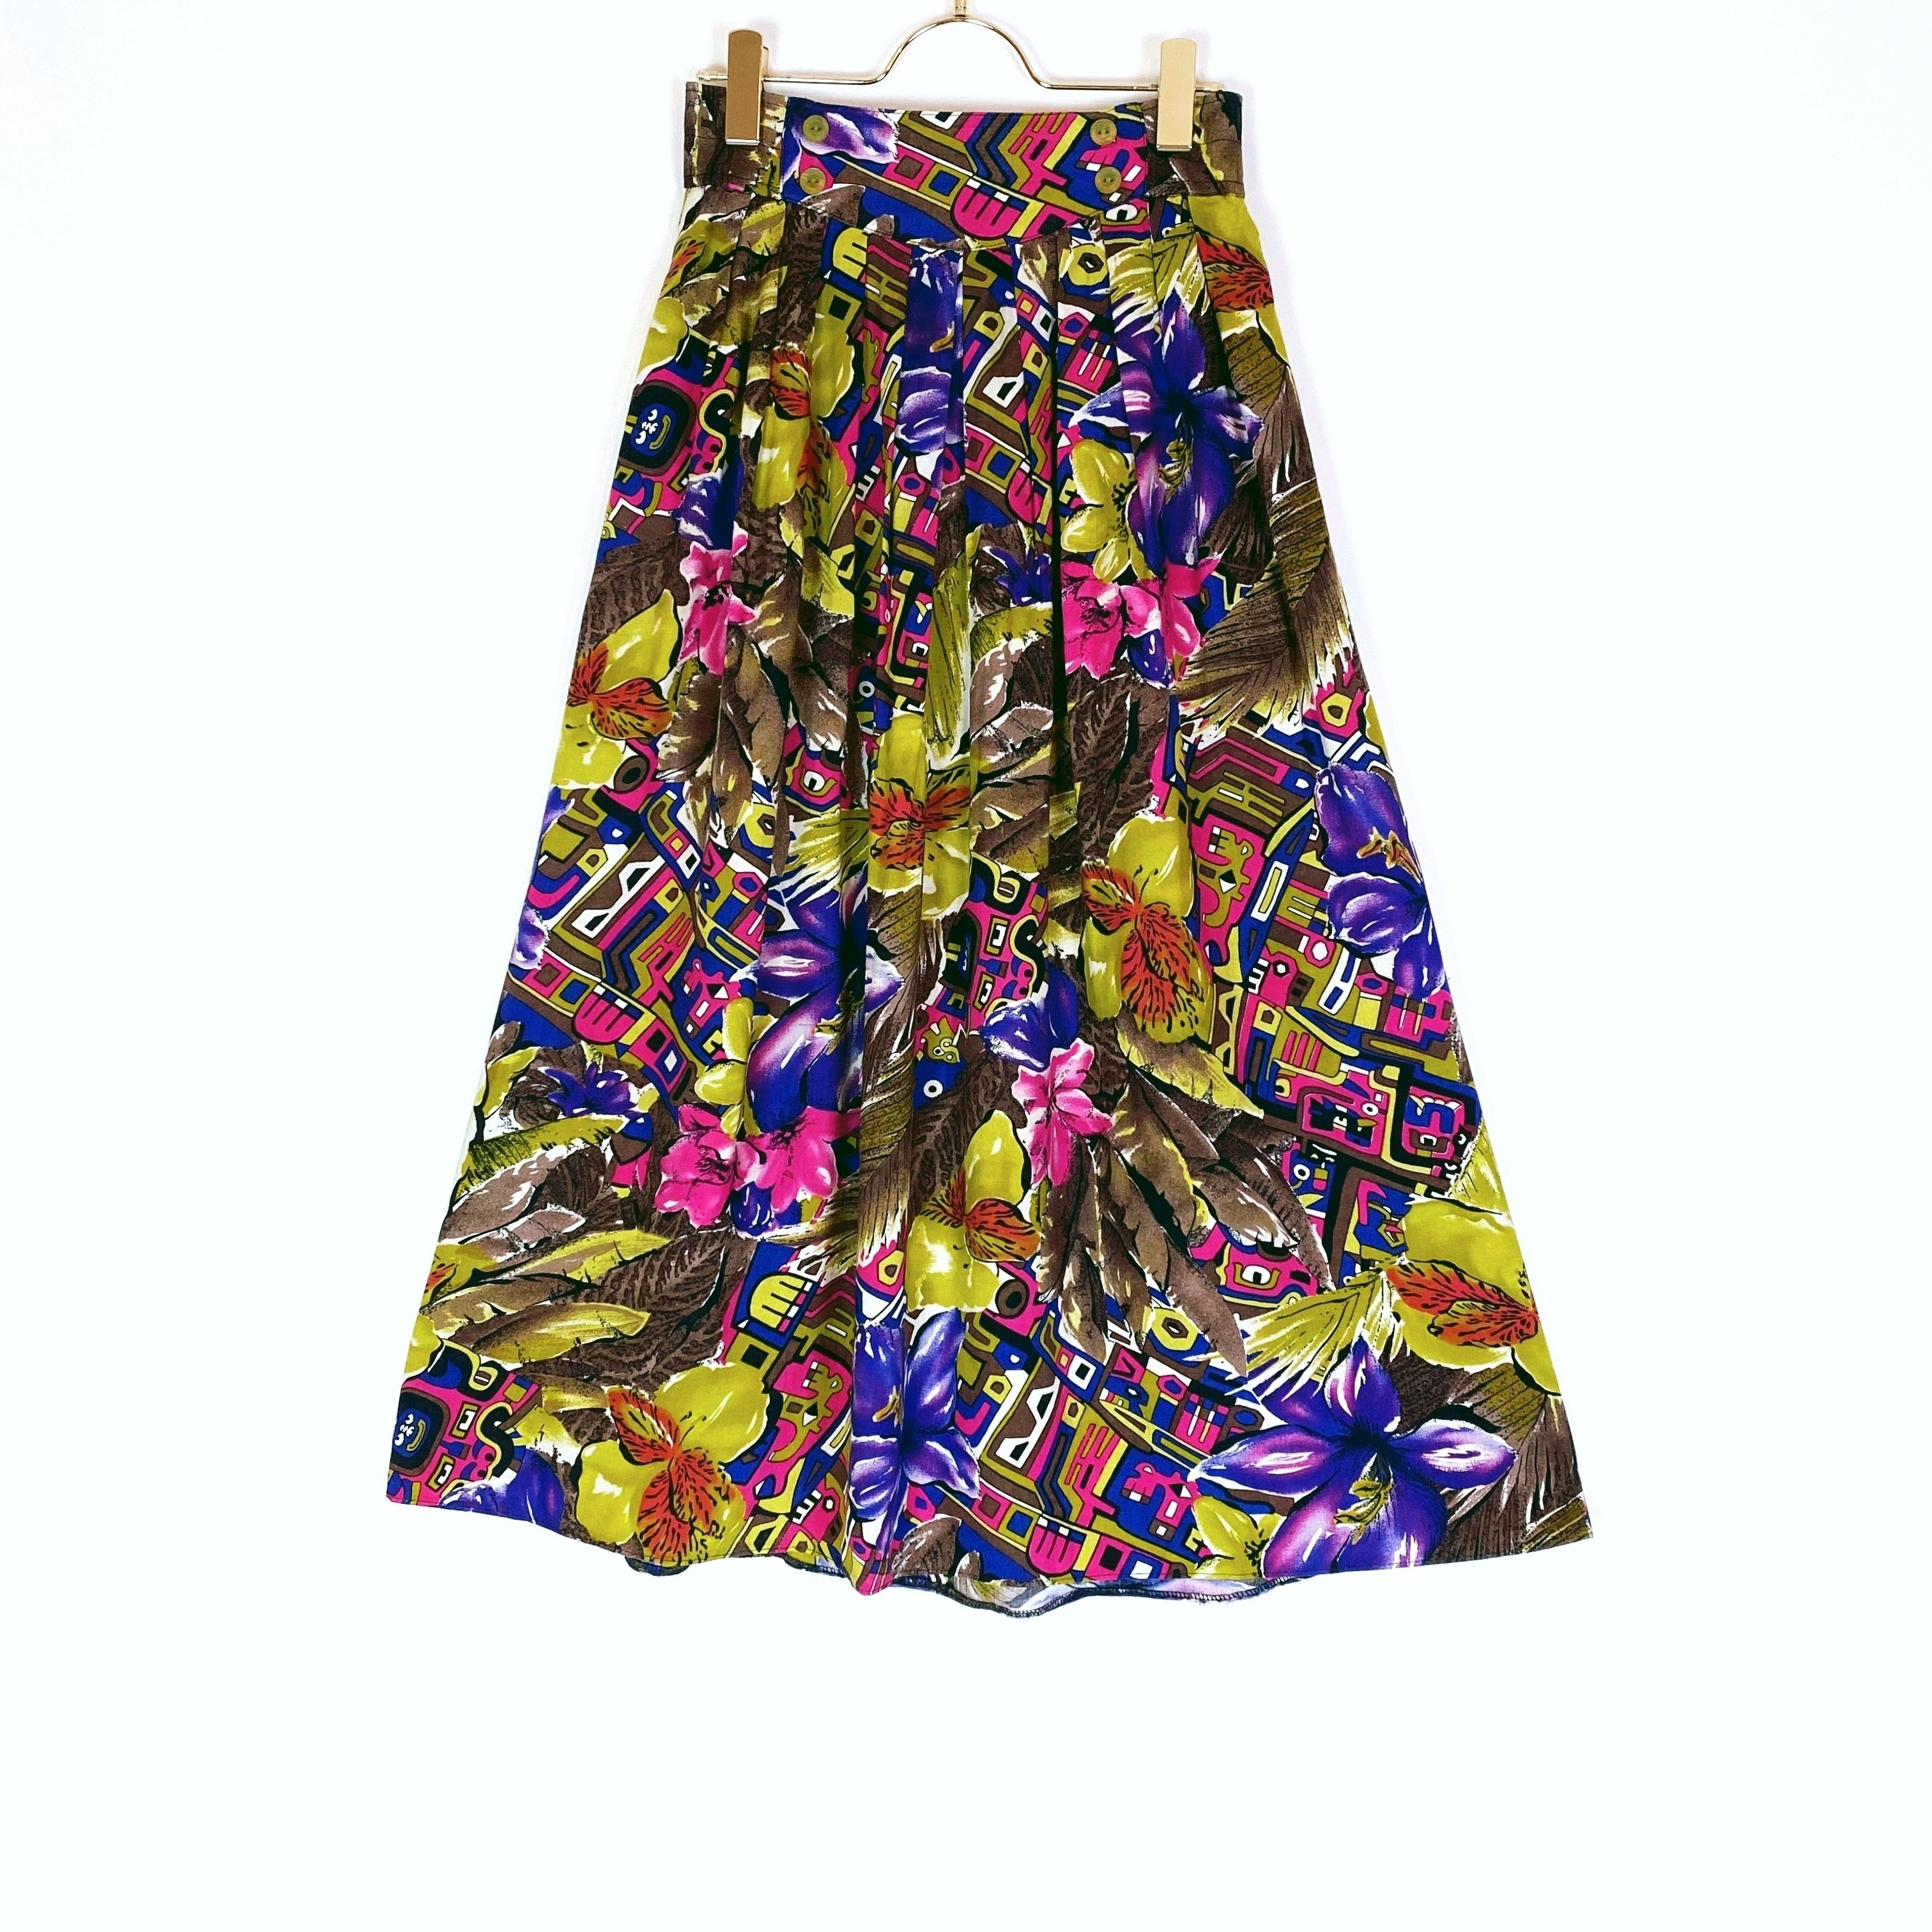 ◼︎80s vintage Bohemian print rayon skirt from Germany◼︎